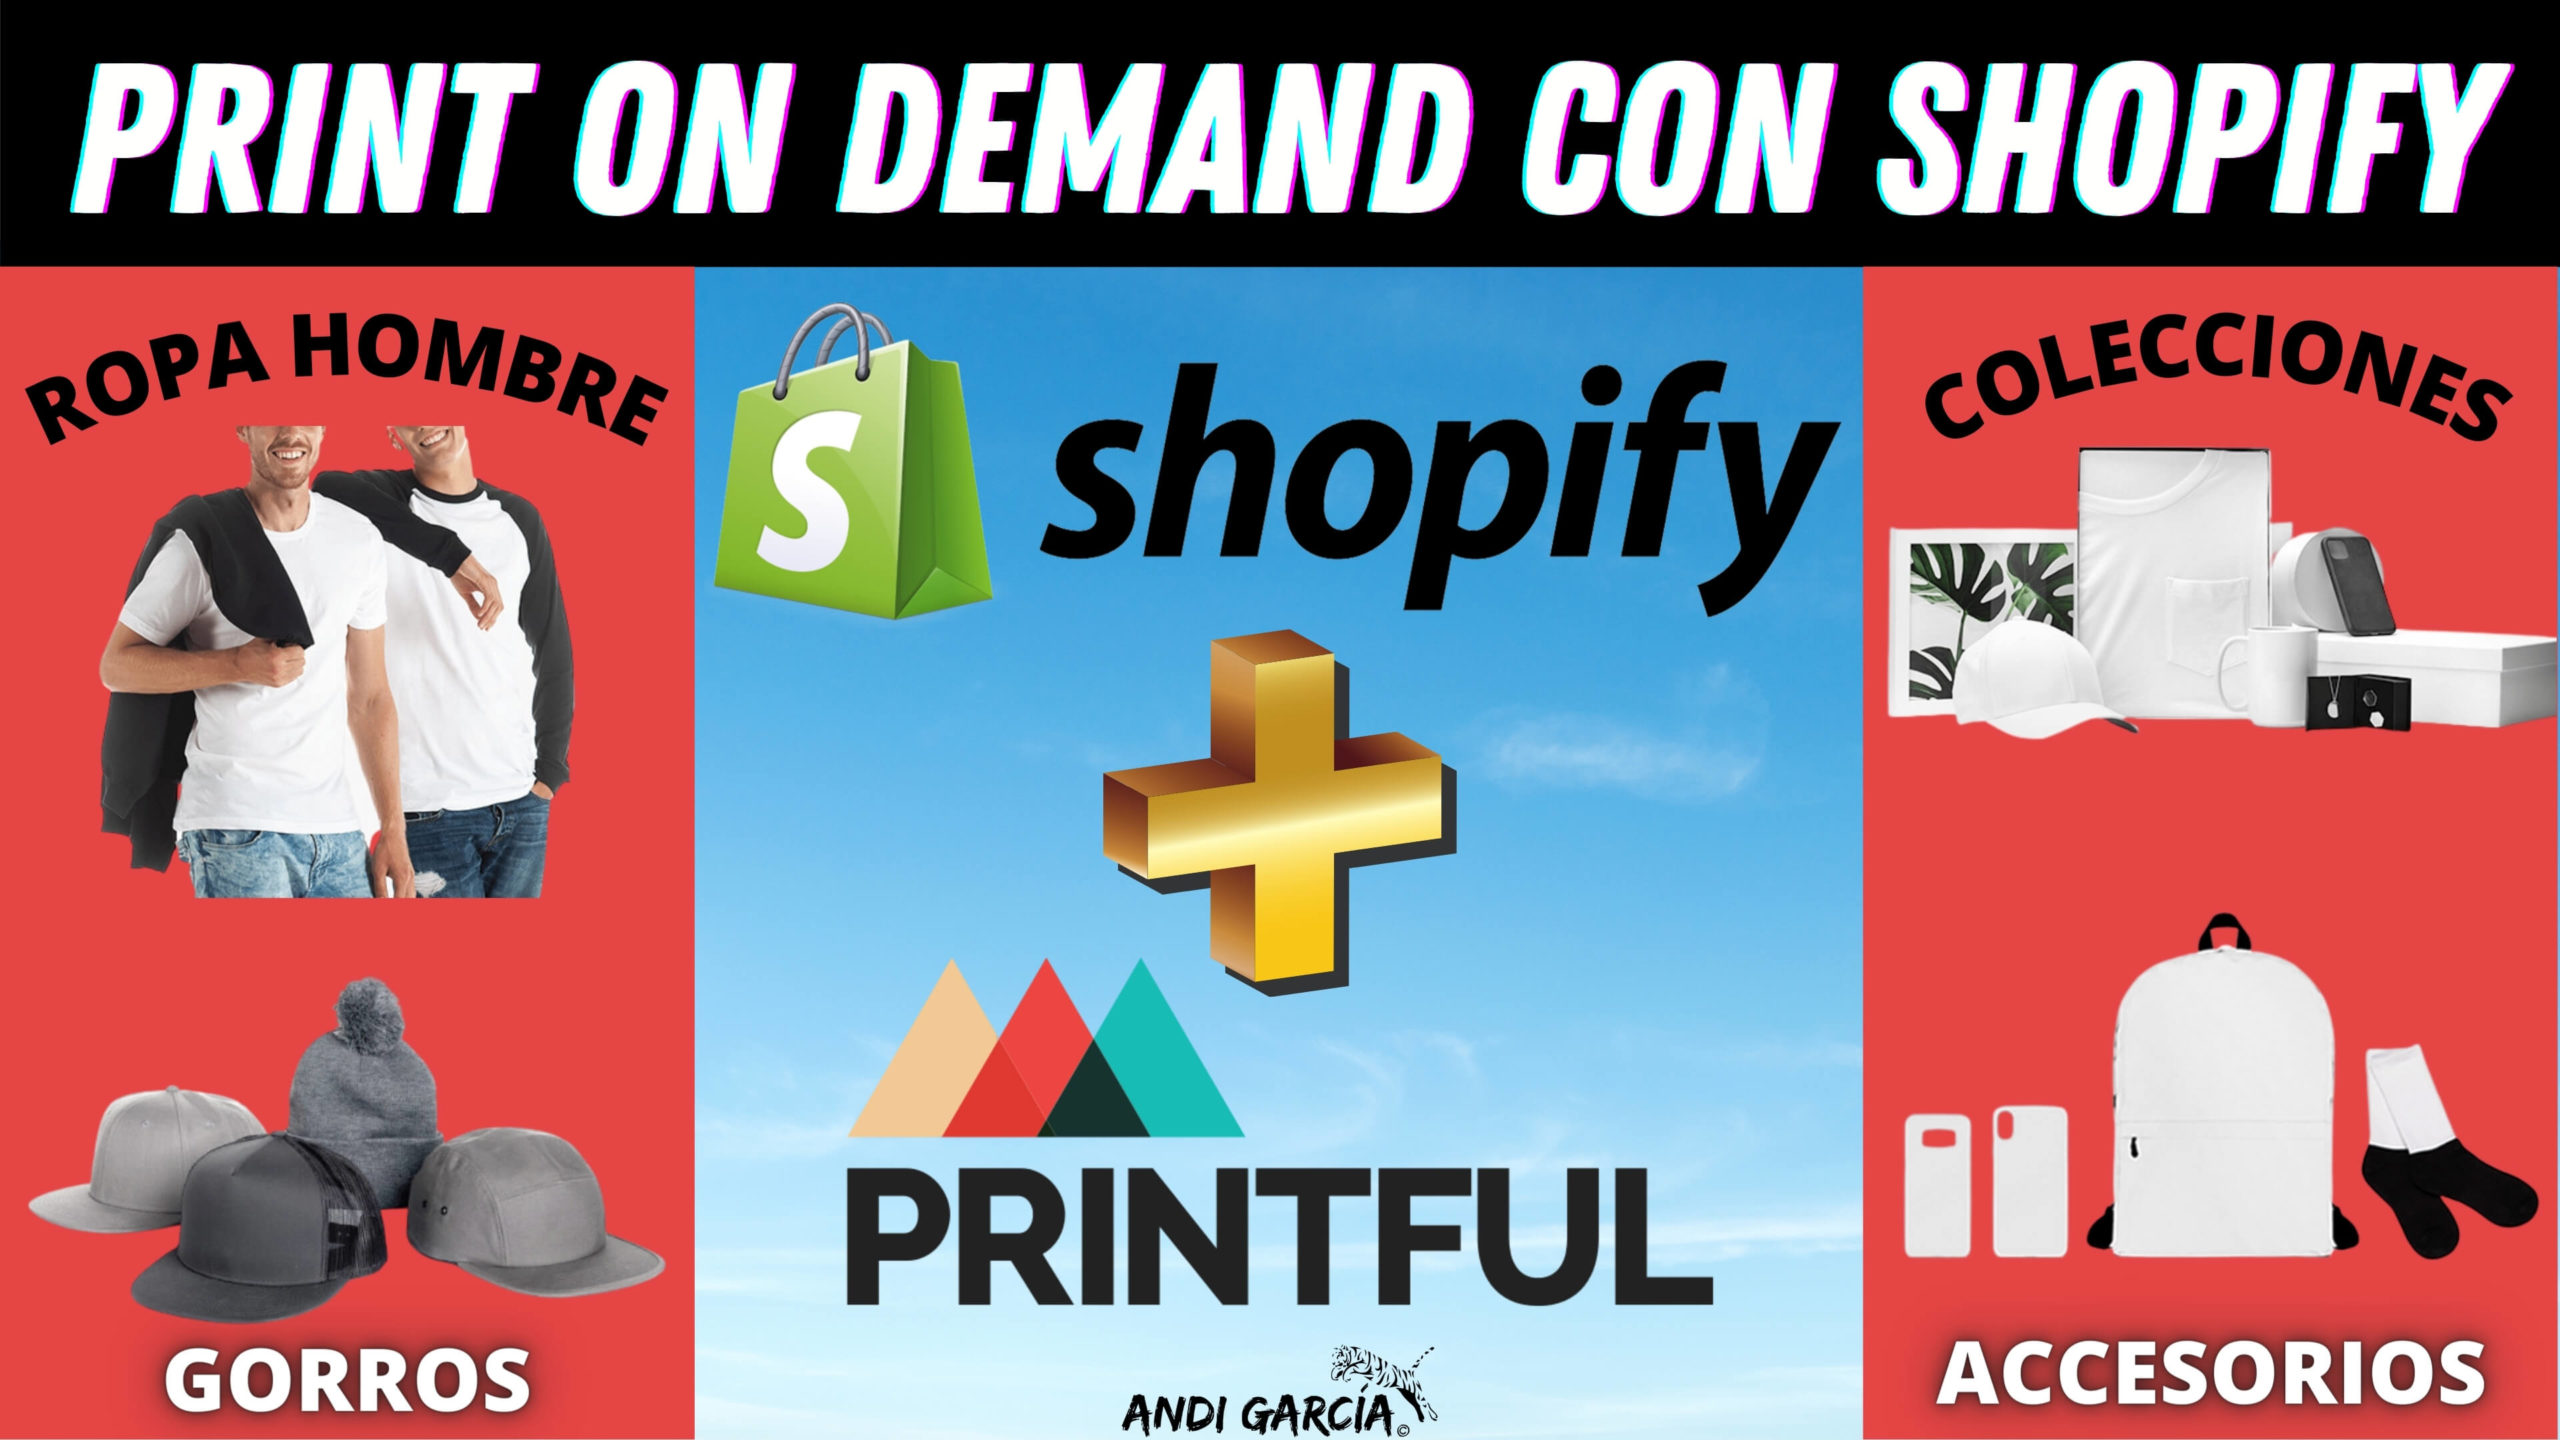 PRINTFUL CON SHOPIFY